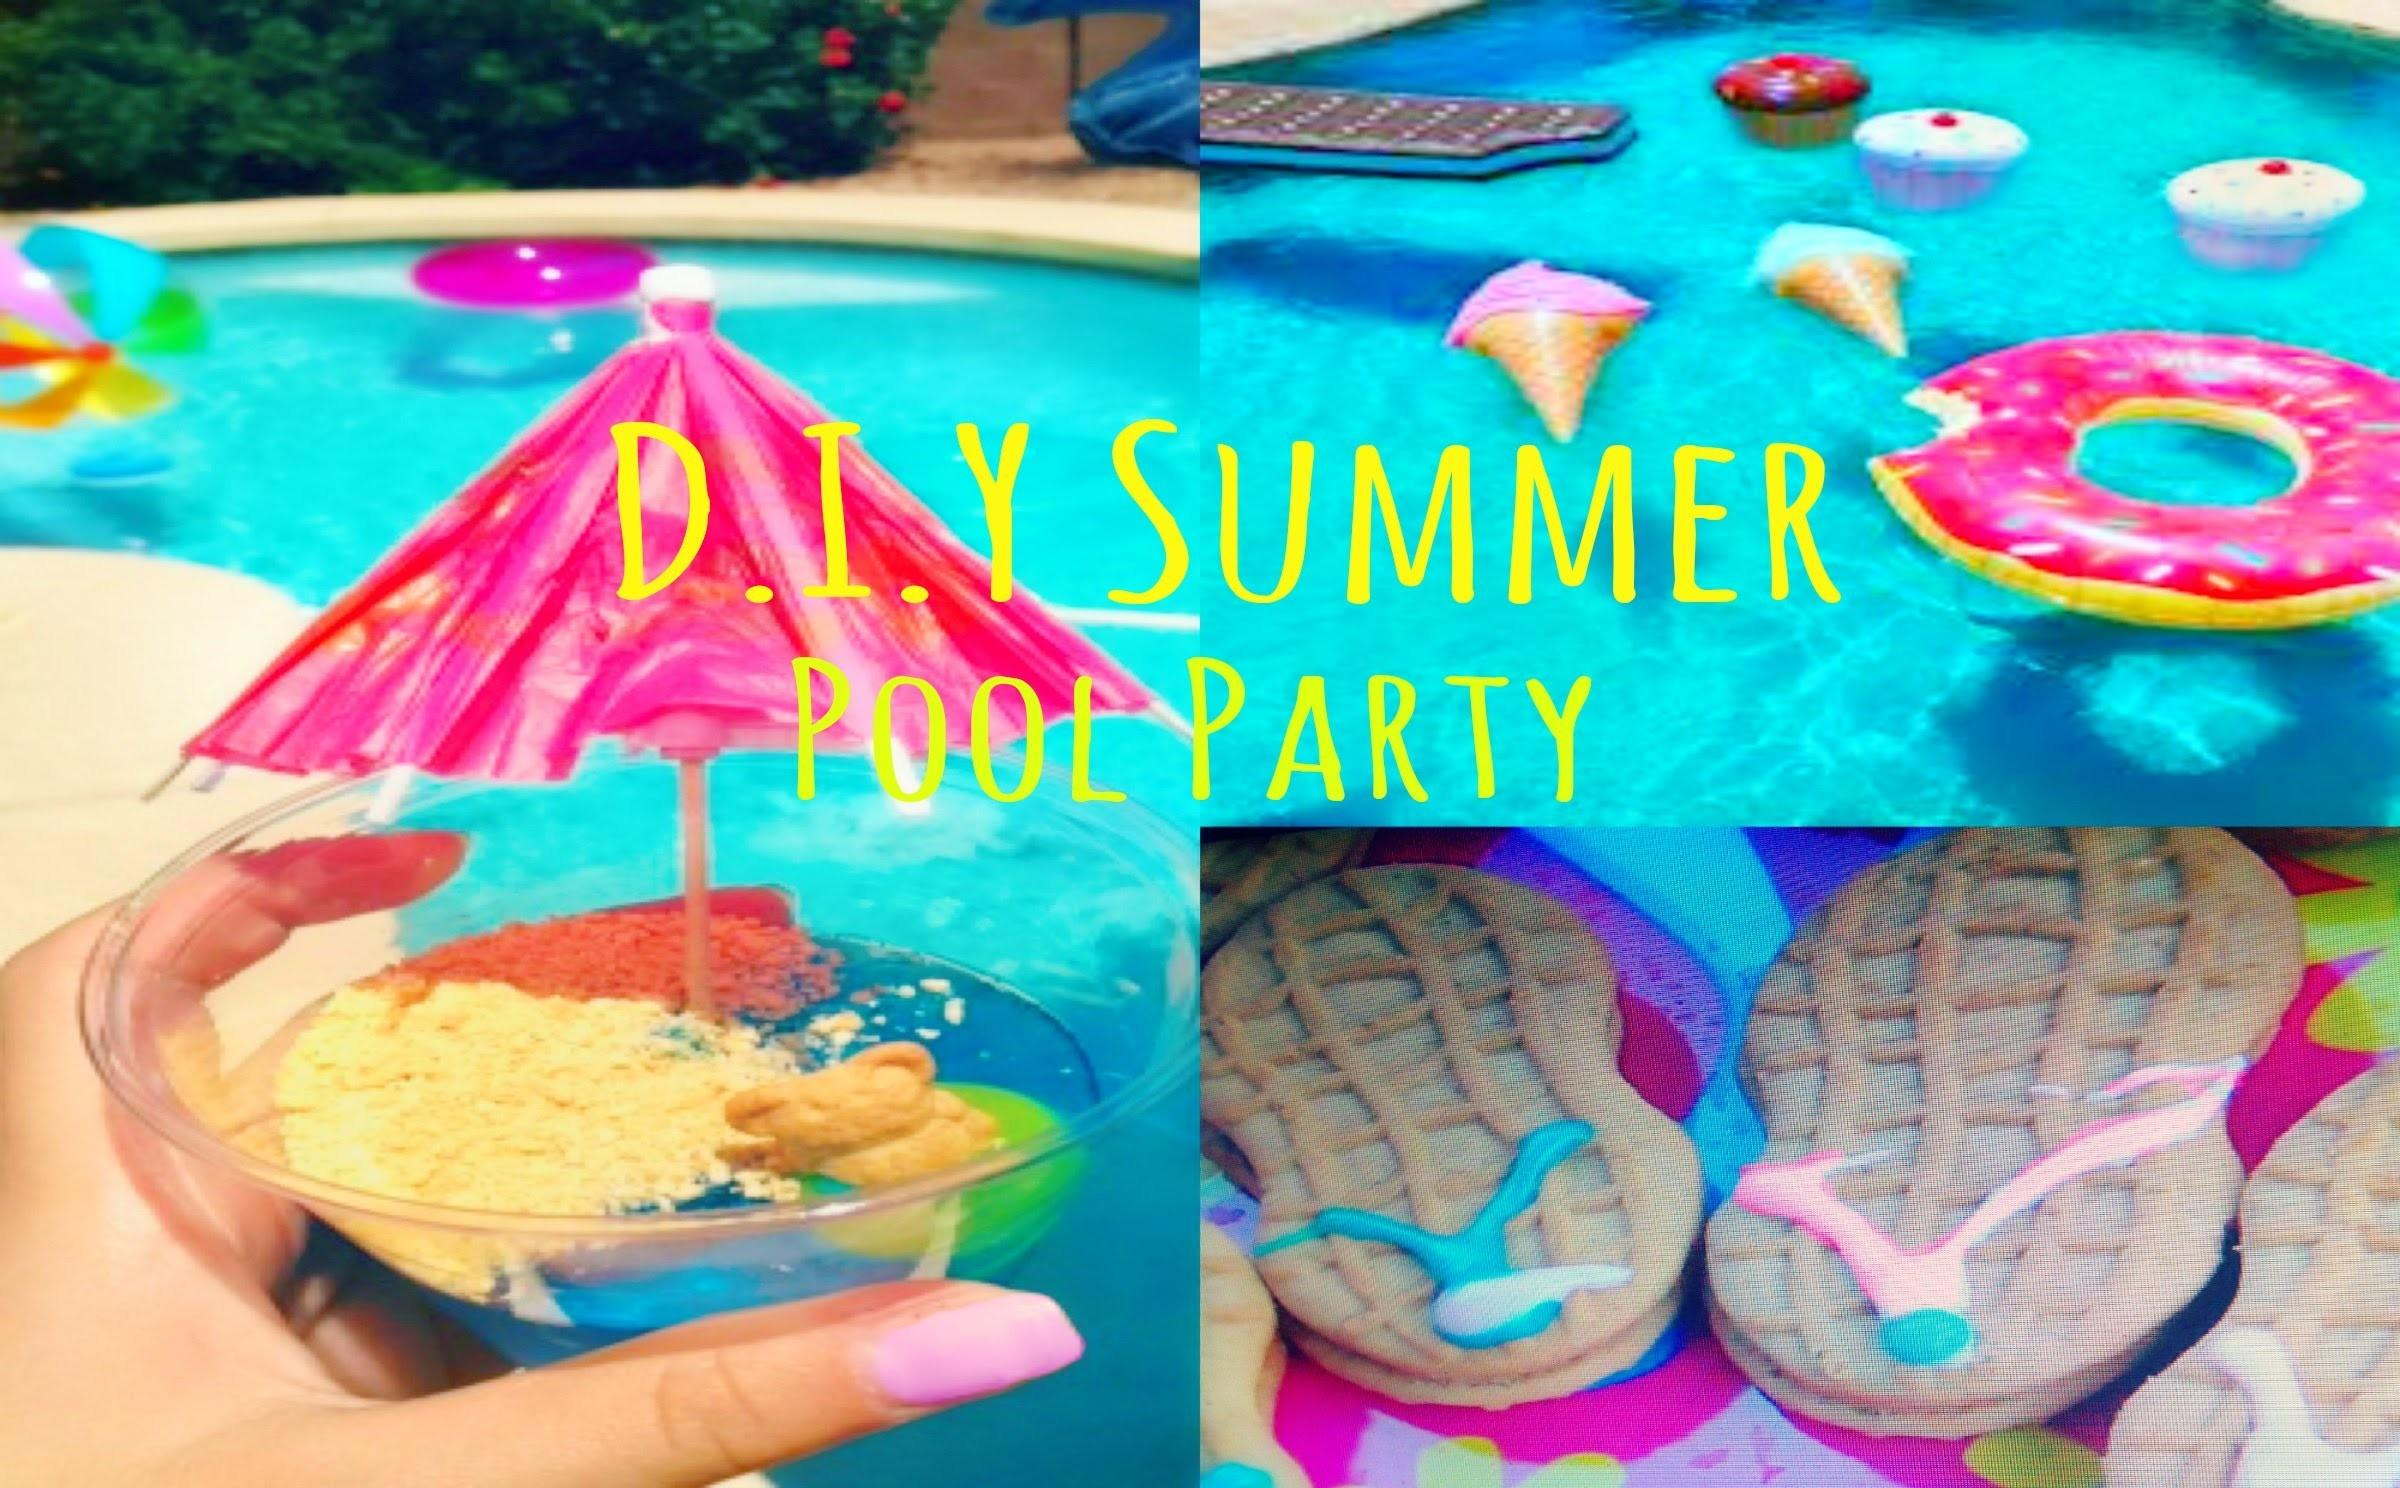 Summer Pool Party Treats Diy Booth Decor